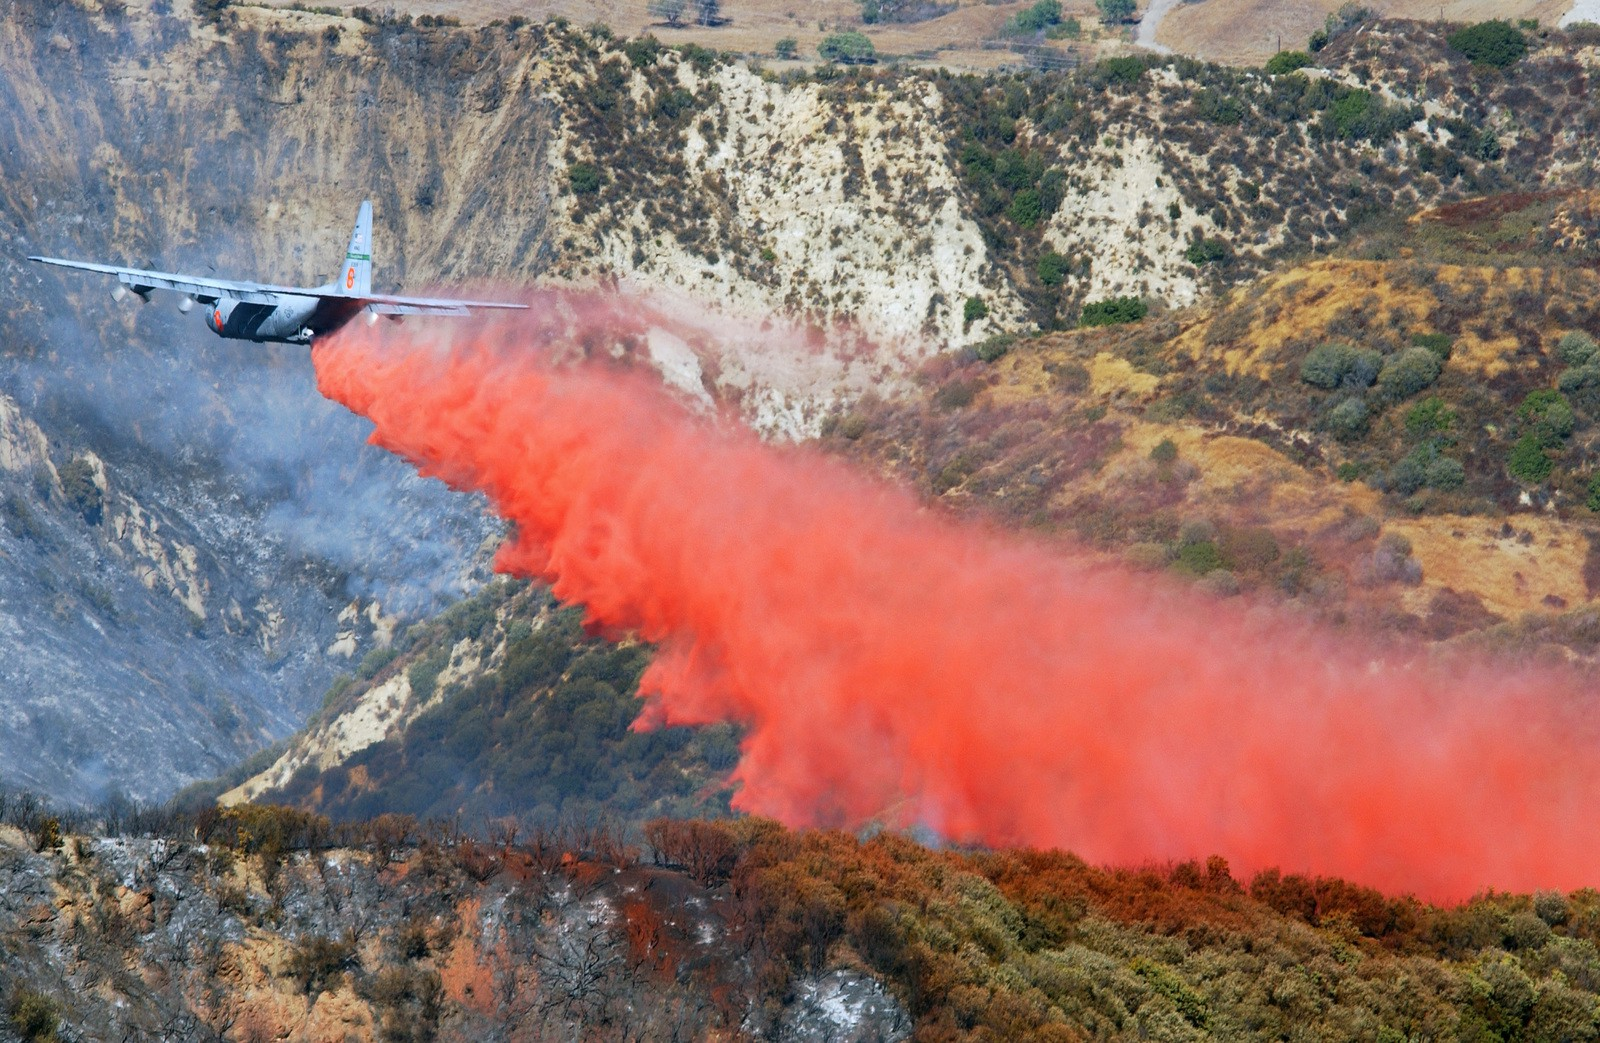 Plane dumping water on wildfire in california